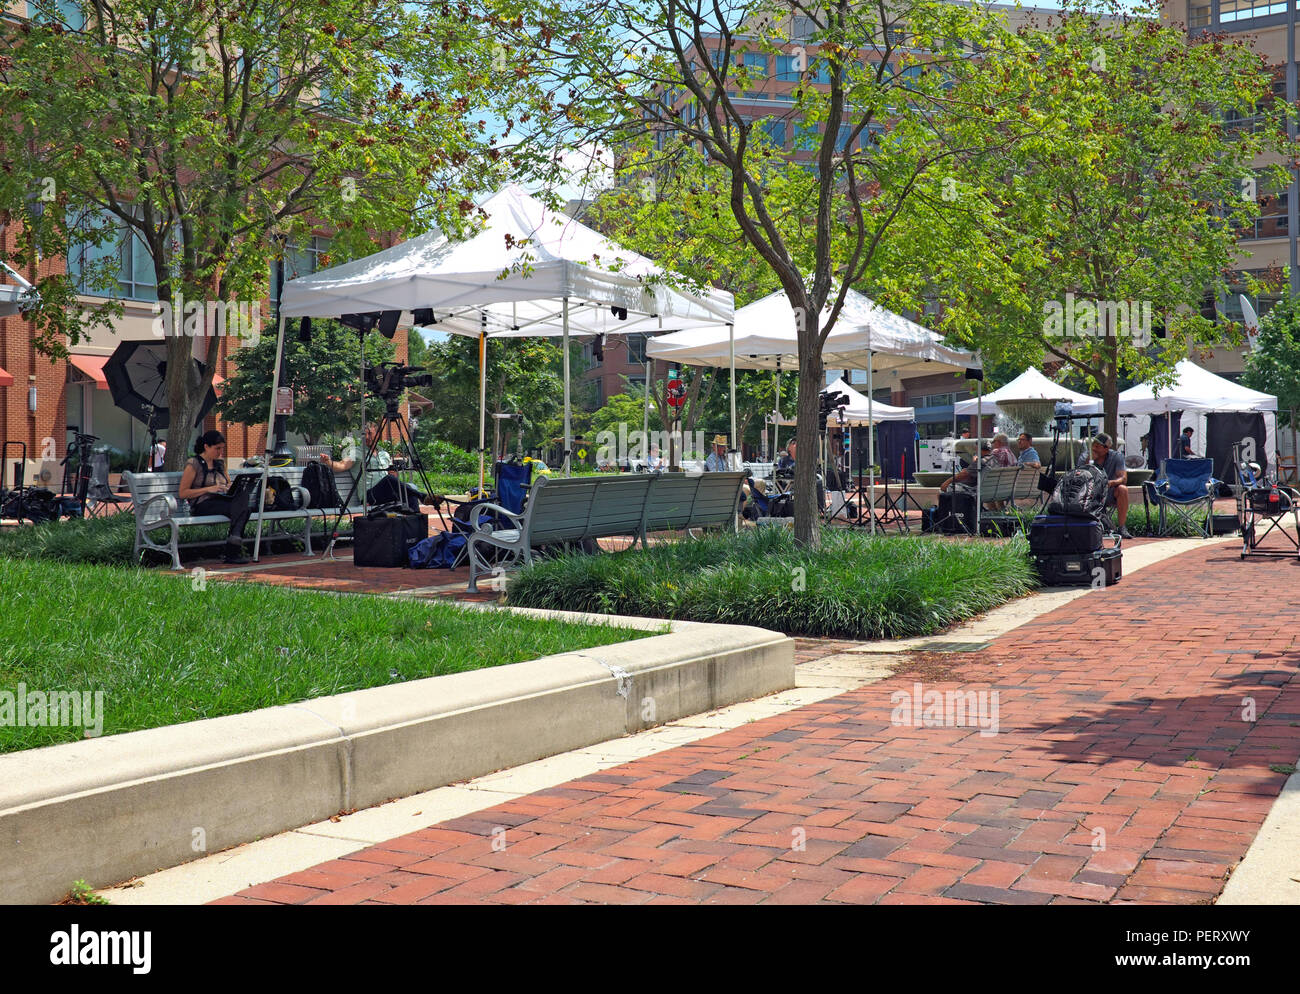 Broadcast media tents and cameras are set up in Courthouse Square outside the Alexandria VA courthouse where the Paul Manafort is convening. - Stock Image